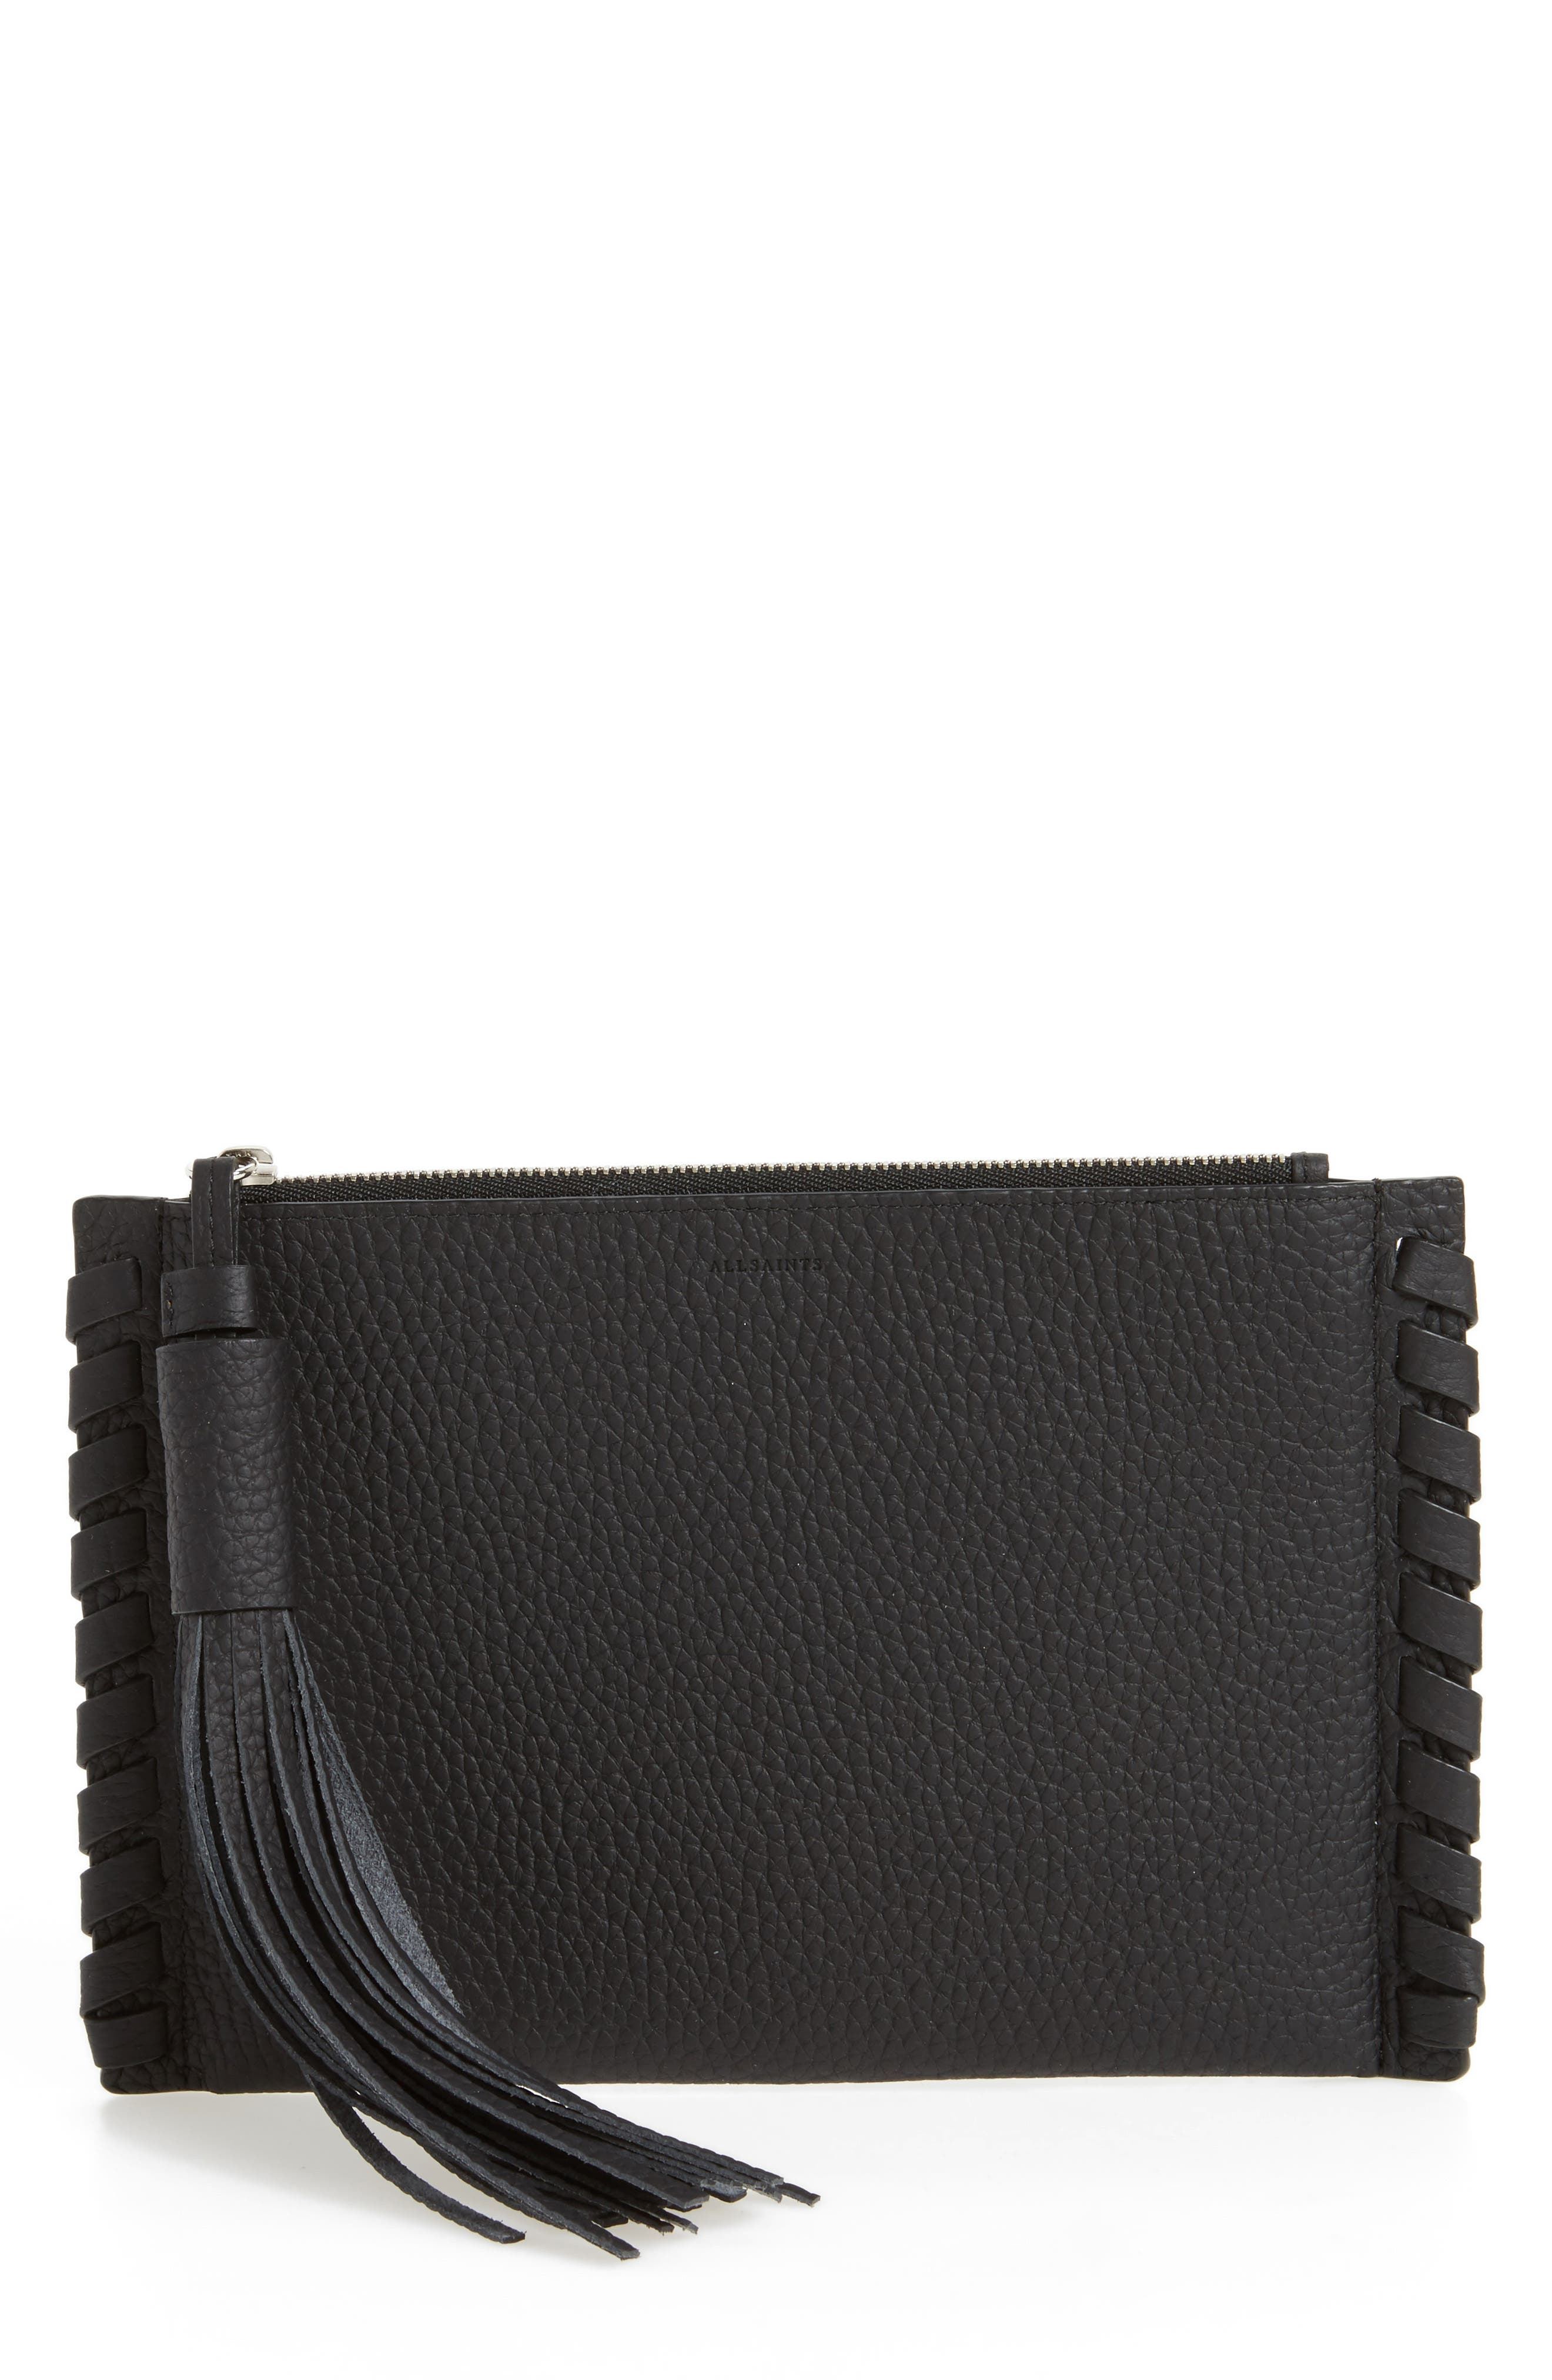 Alternate Image 1 Selected - ALLSAINTS Small Kepi Leather Zip Pouch